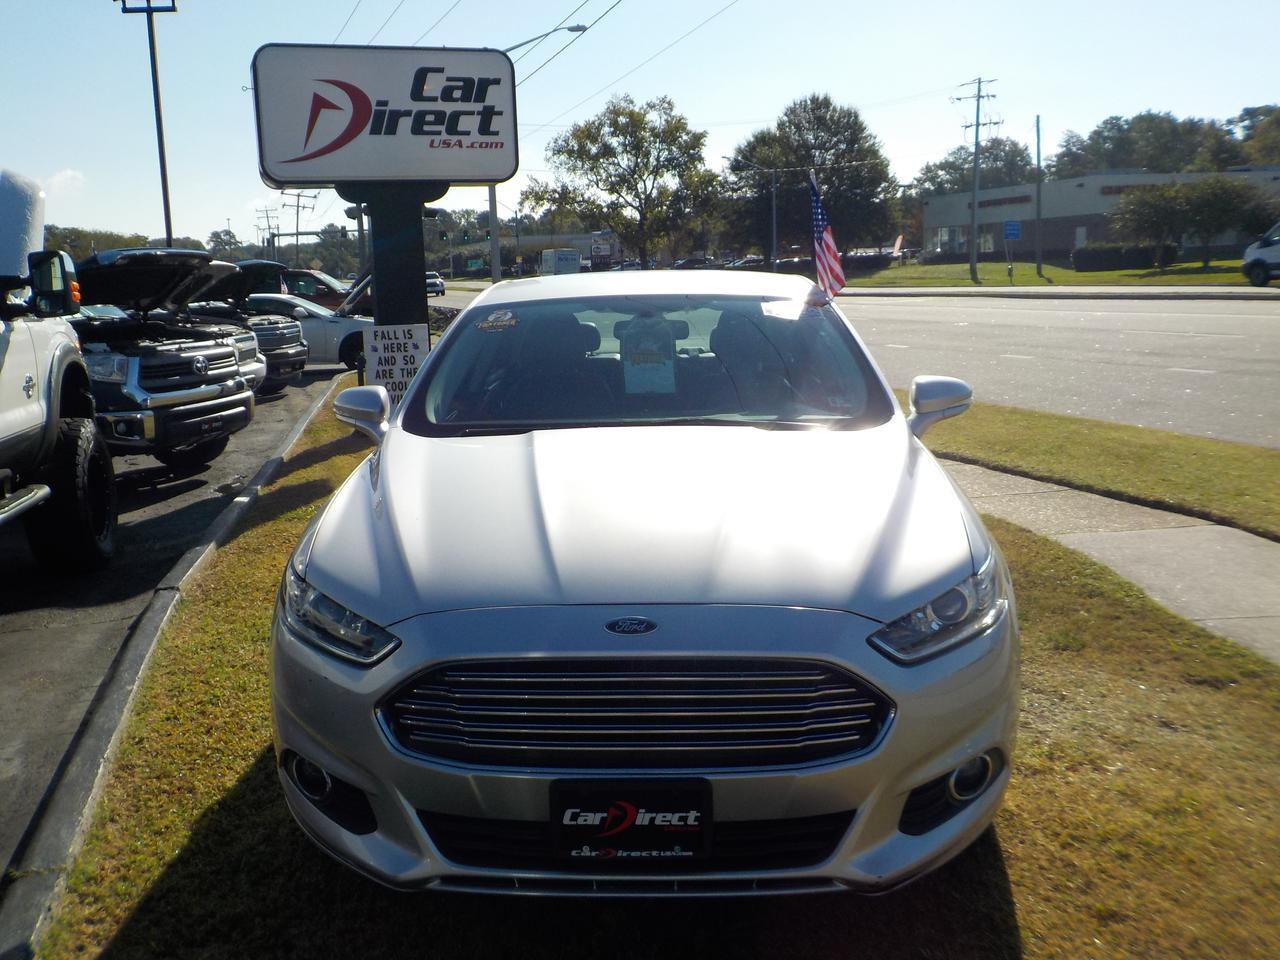 2013 FORD FUSION SE, WARRANTY, BACK UP CAMERA, LEATHER HEATED SEATS, BLACK RIMS, NAVIGATION! Virginia Beach VA